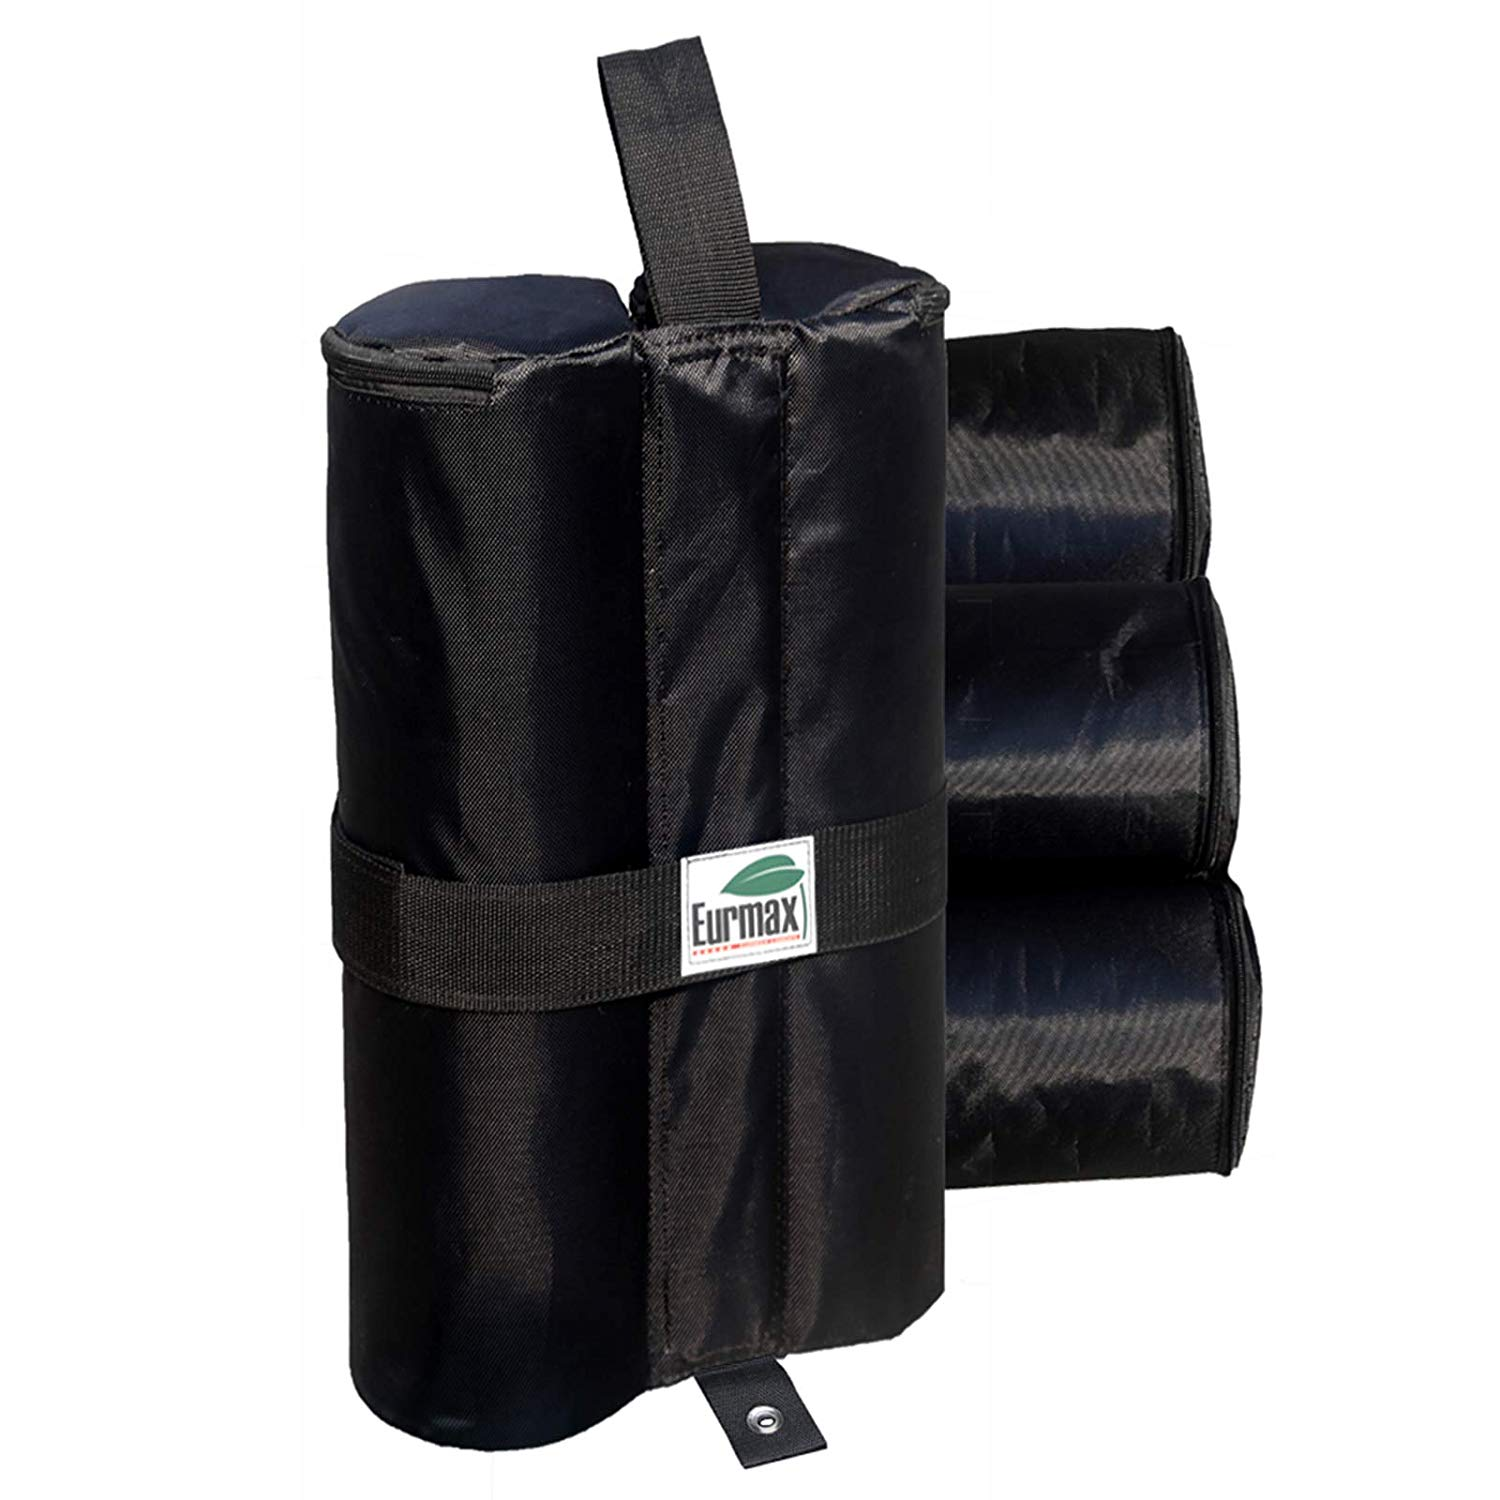 Eurmax 60lbs IPC Deluxe Canopy Tent Weights Sand Bag Leg Weights Dual Zipper Partition